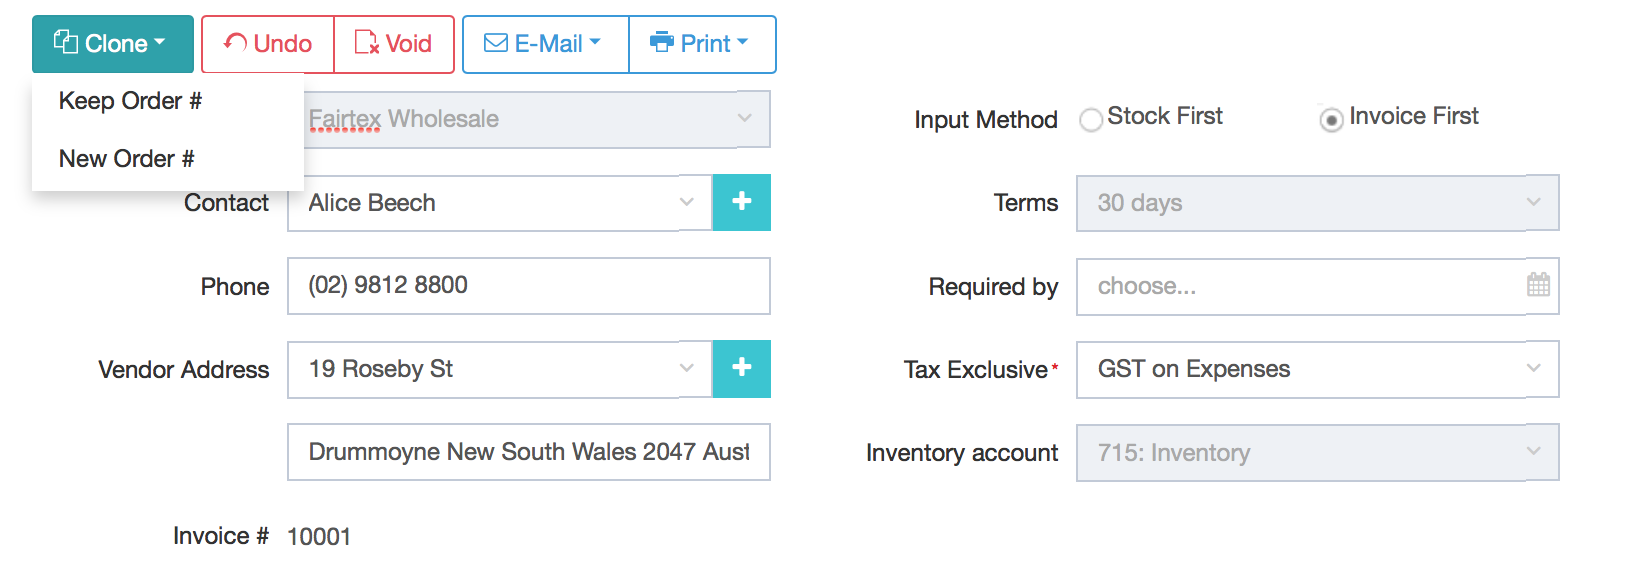 Are Invoice And Purchase Order The Same | Processing Orders That Have Been Partially Received Invoiced Dear